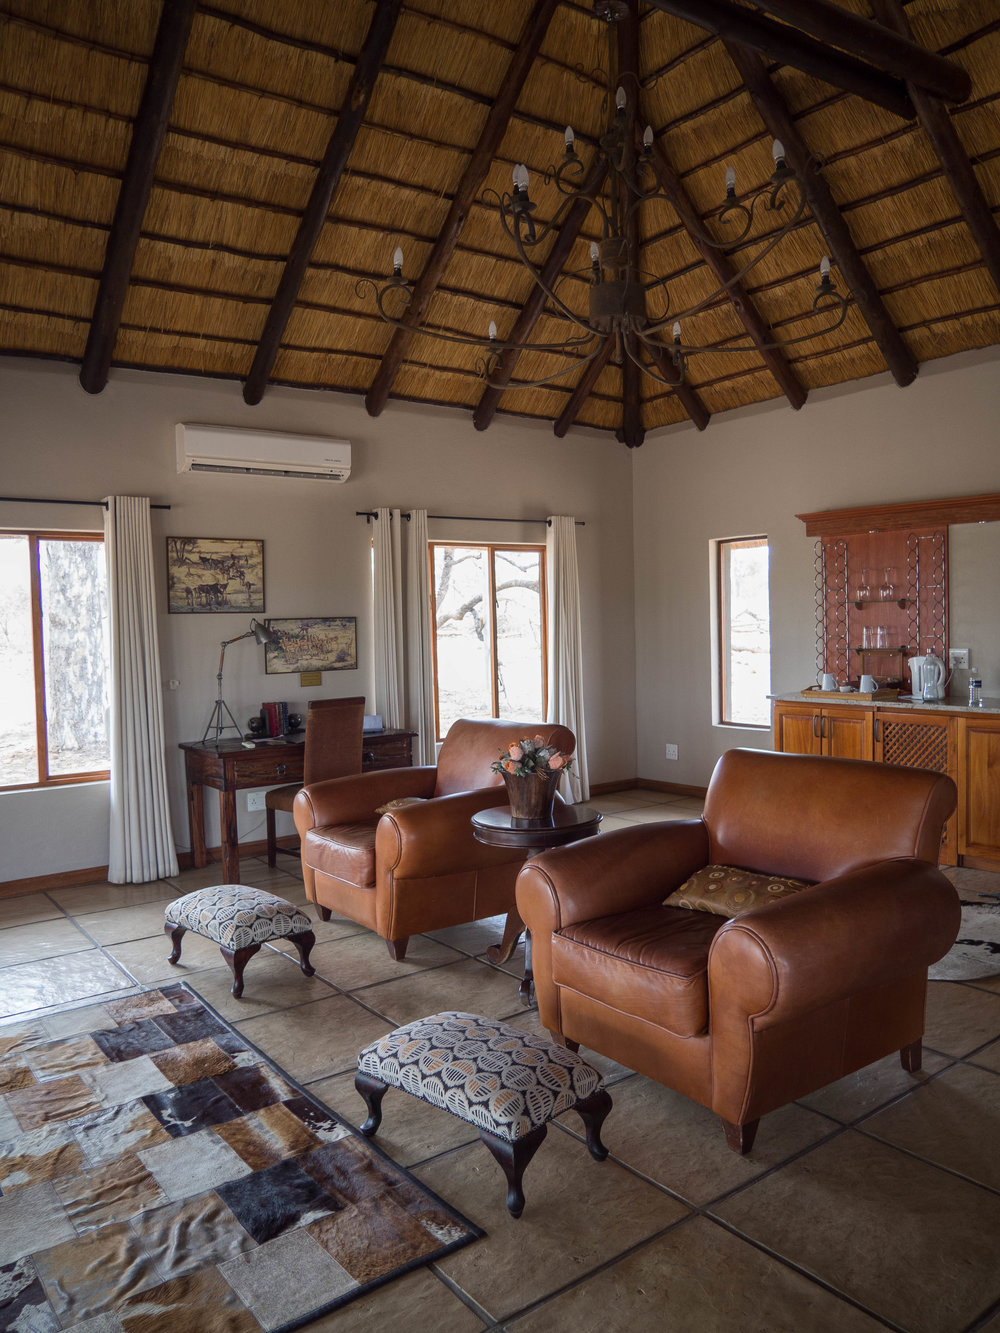 Arathusa Lodge - South African Safari in Sabi Sands Reserve